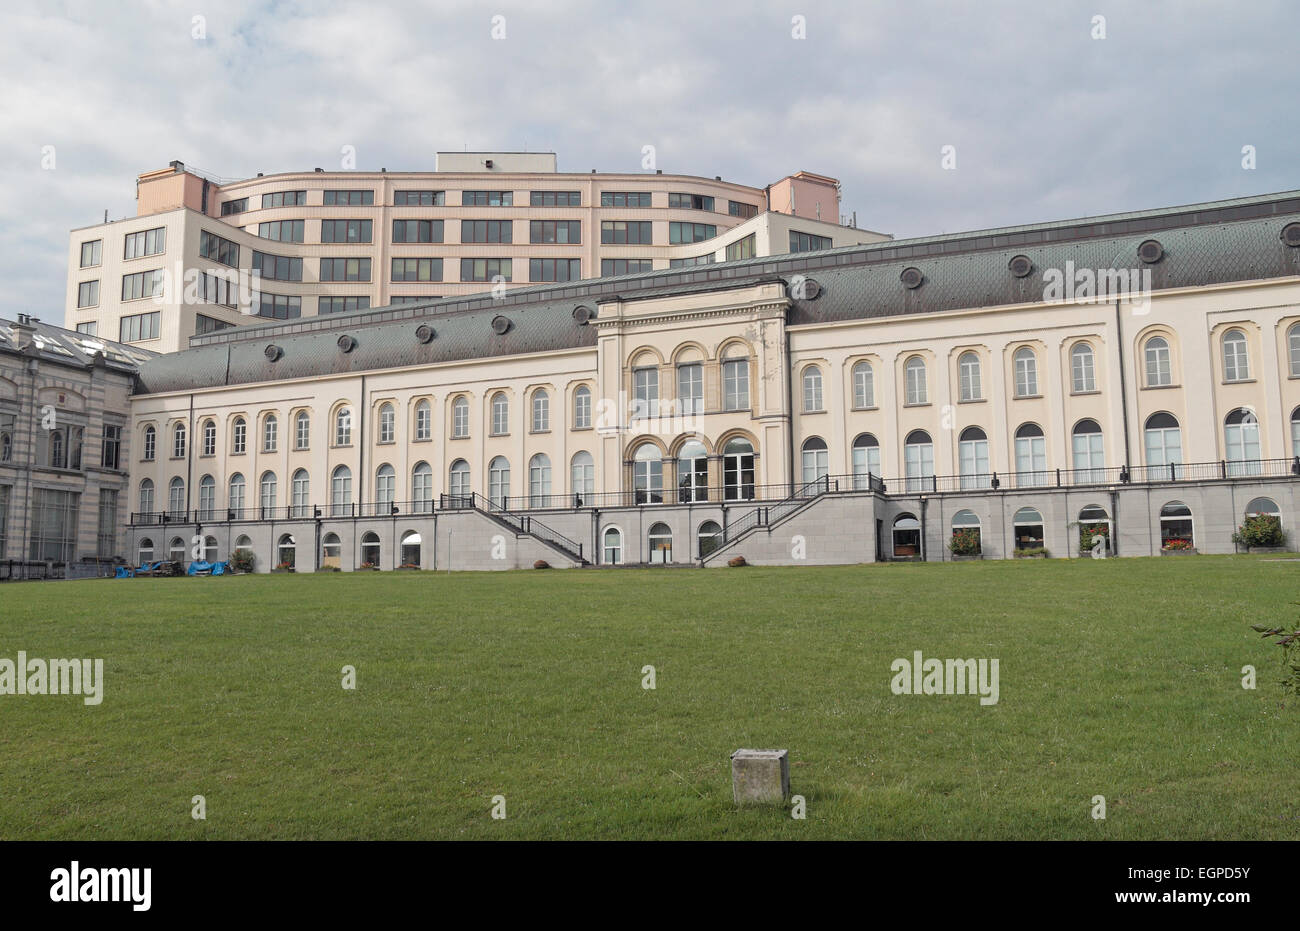 Rear view of the Royal Belgian Institute of Natural Sciences in Brussels, Belgium. - Stock Image